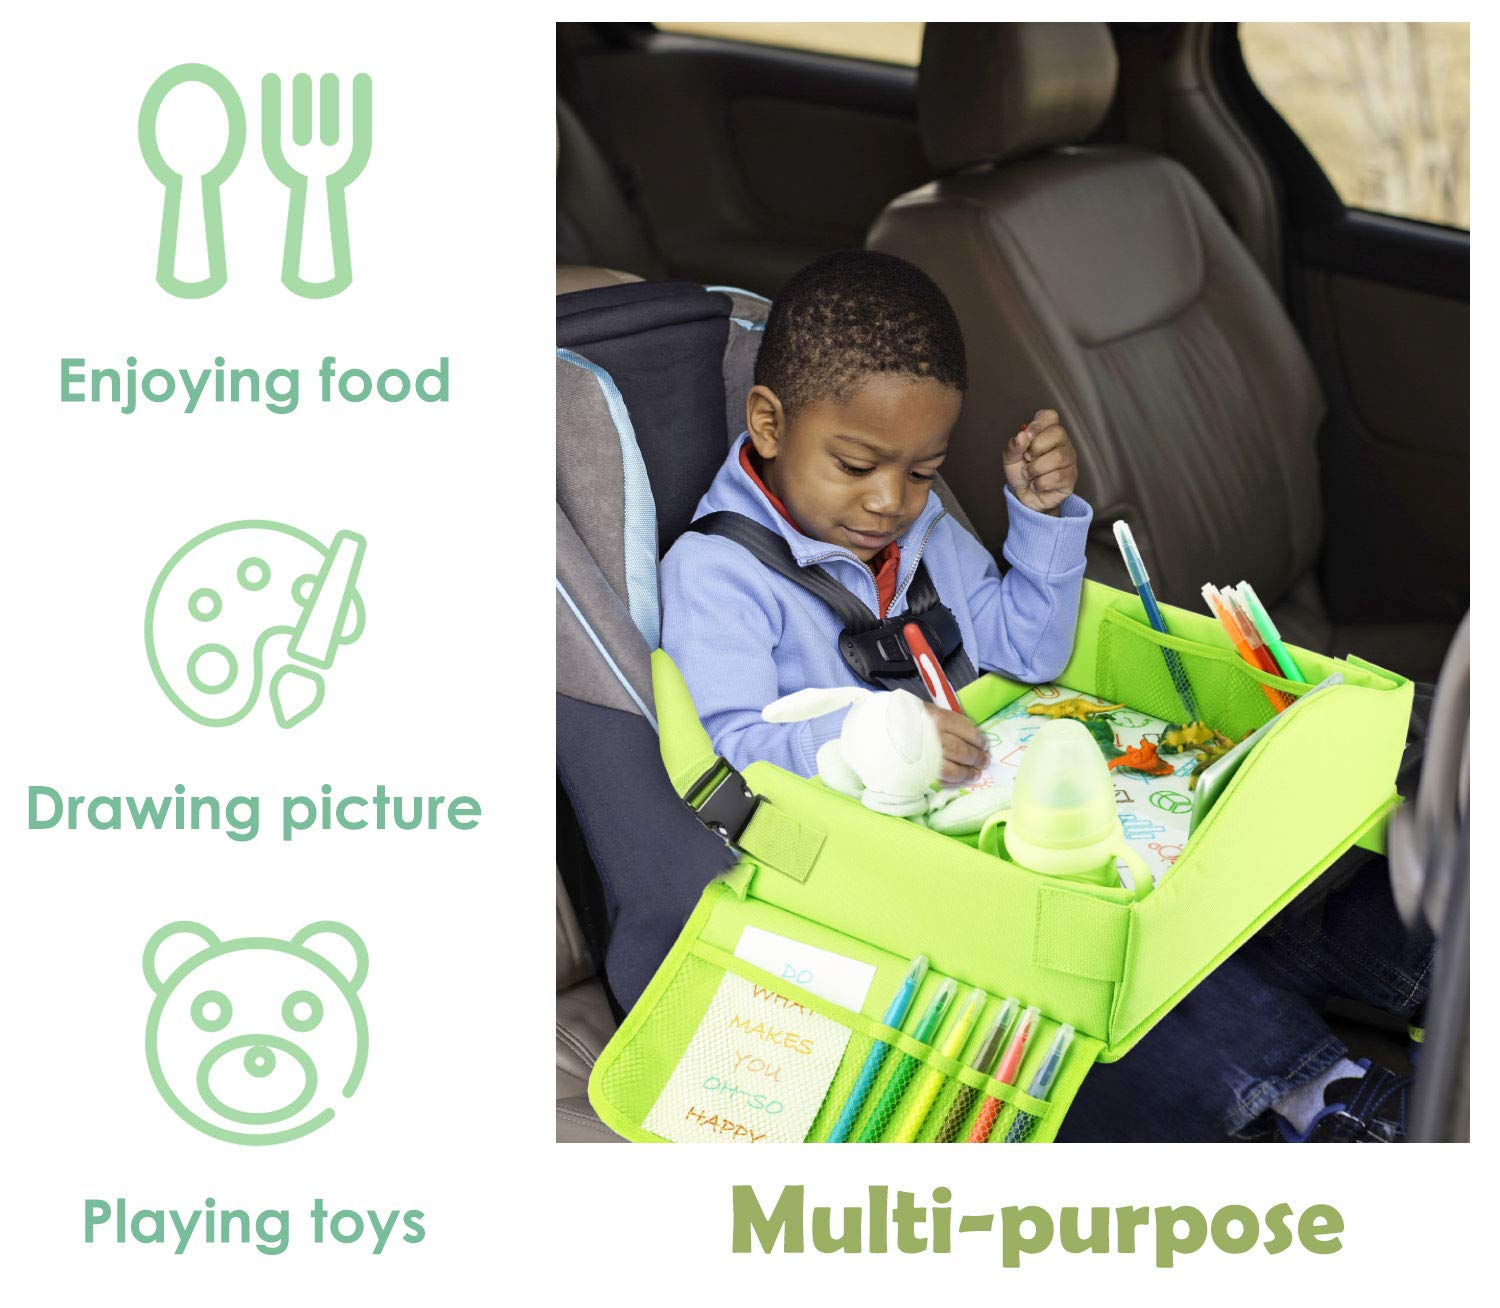 Green Zooawa Car Seat Lap Tray for Kids Toddlers and Baby Seat Attachable Storage /& Organizers Pockets with iPad Tablet Holder Lap Desk for Car Seats Strollers /& Air Travel